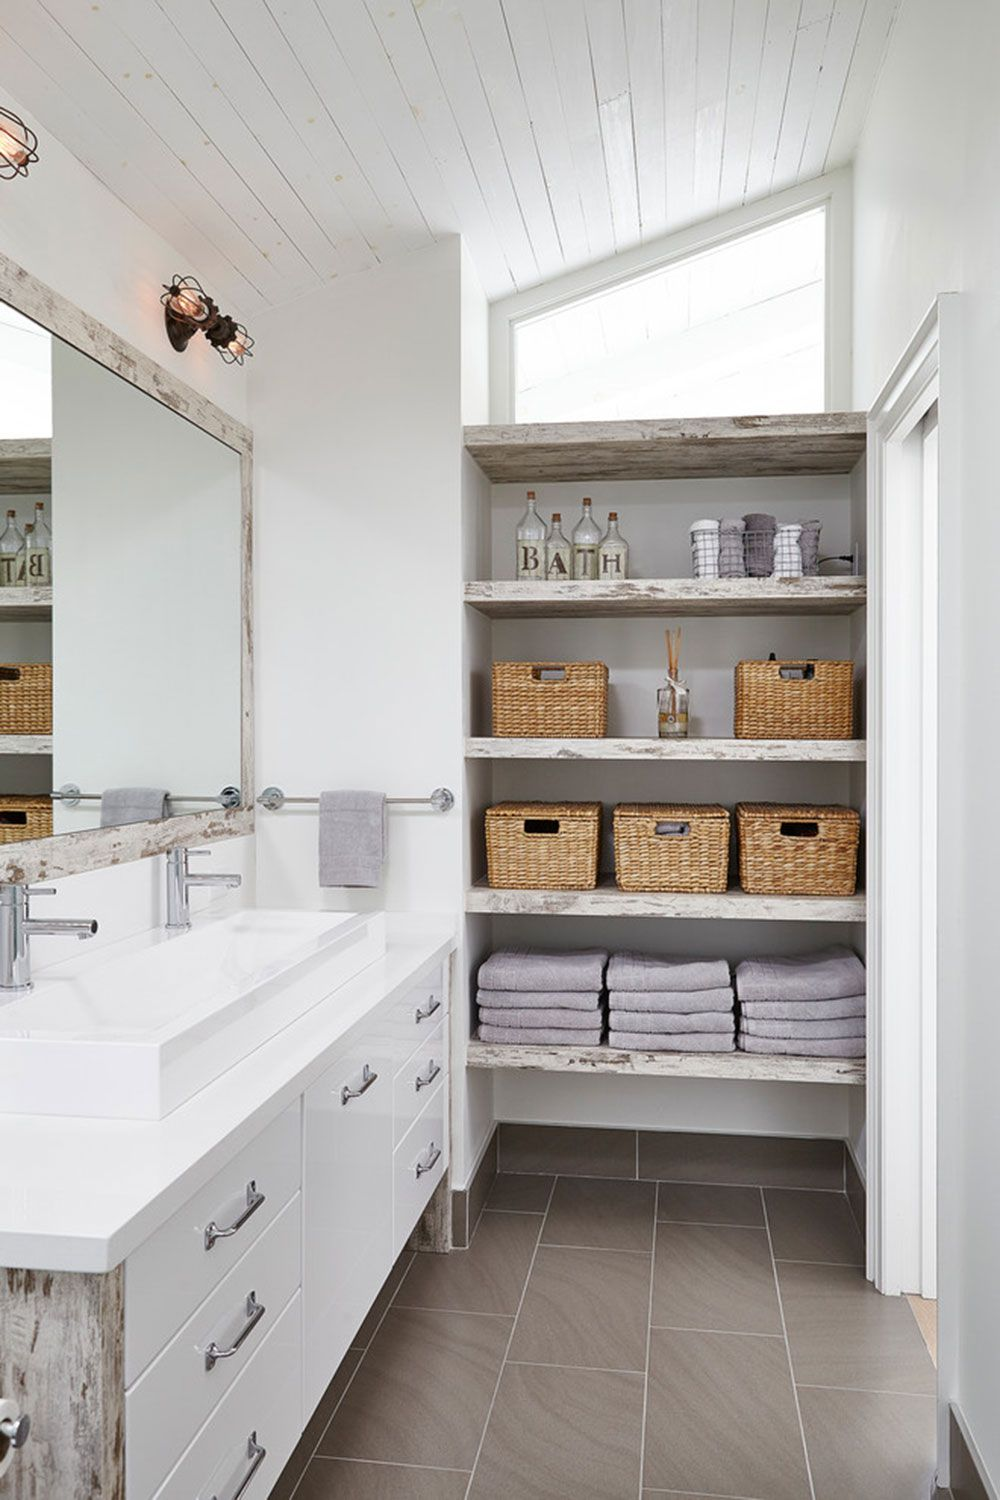 Small bathroom shelf ideas to optimize your bathroom space ...